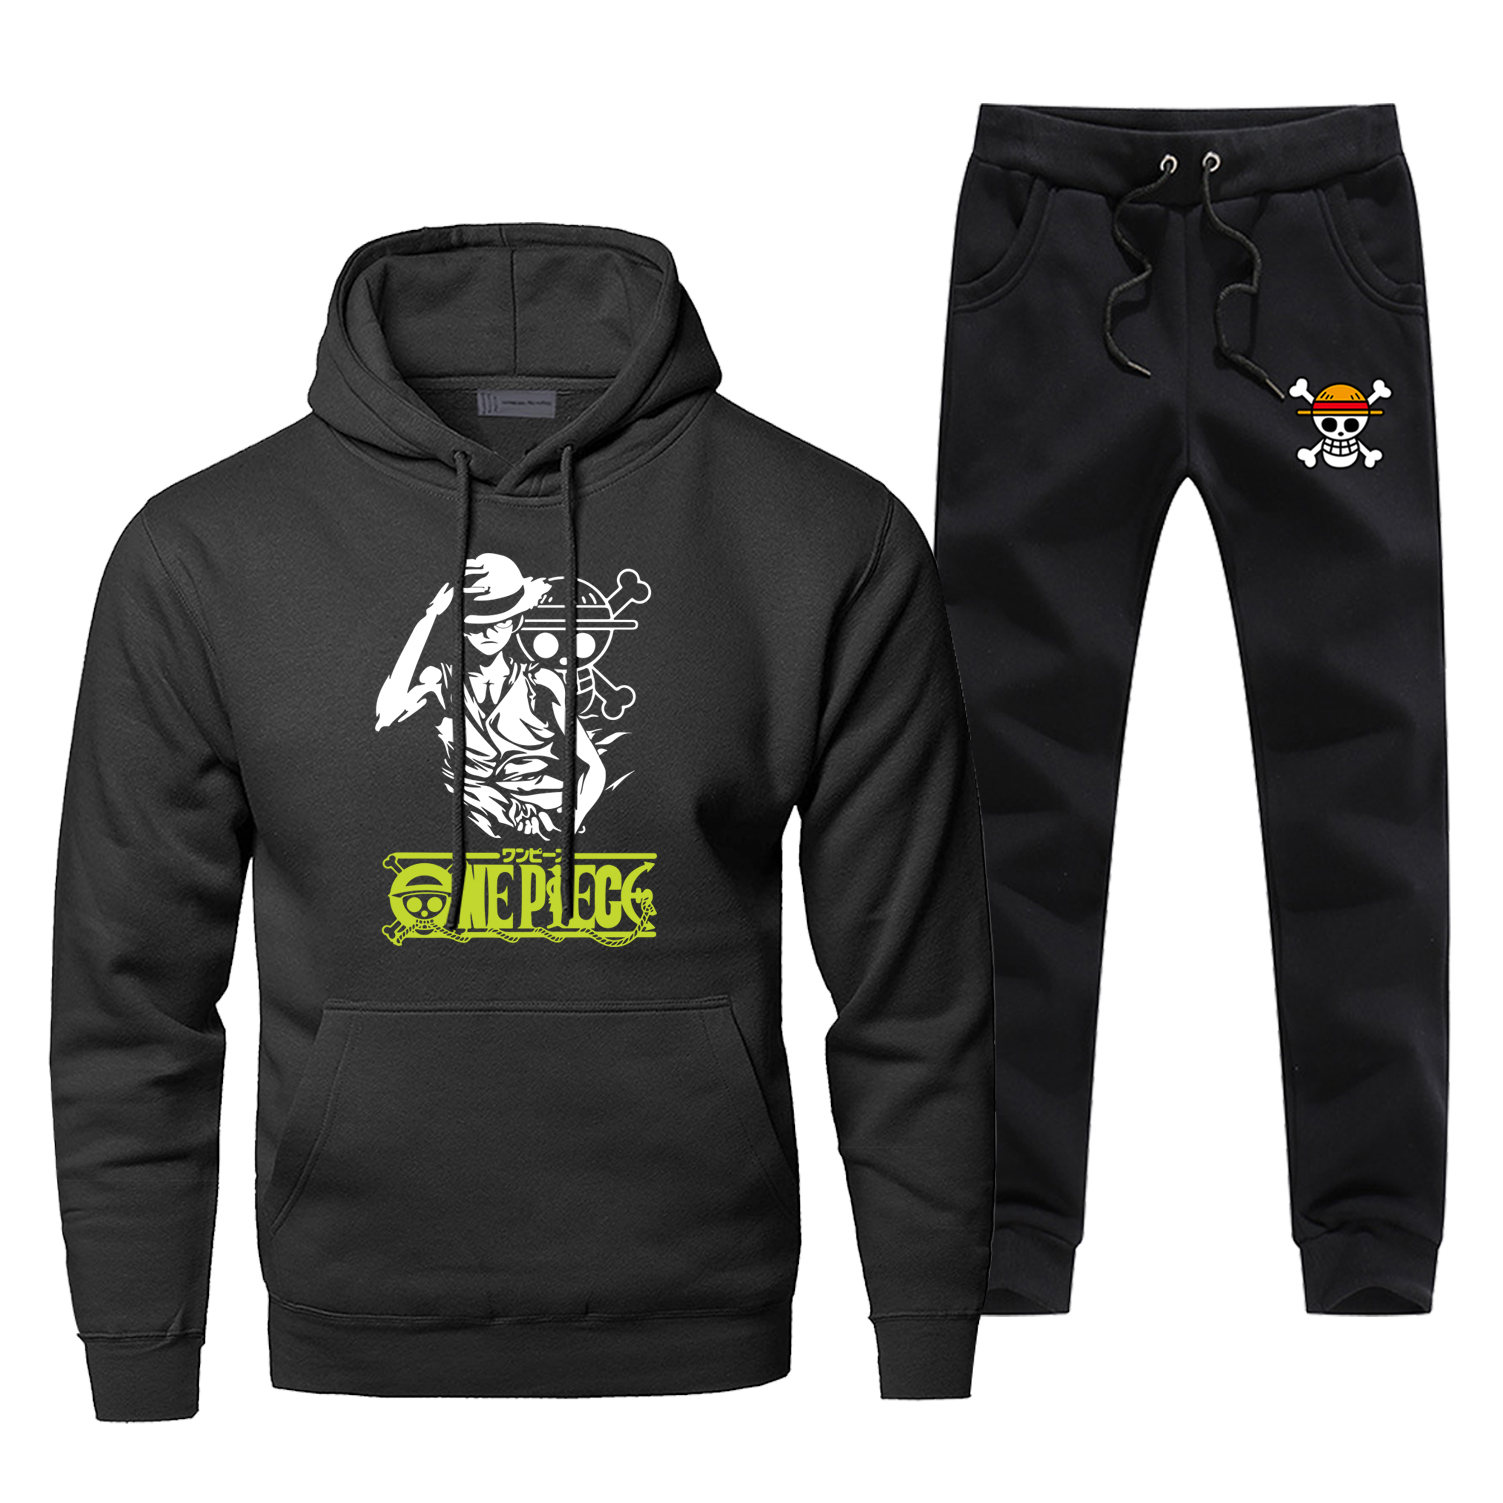 One Piece Mens Hoodies Sets Japan Anime Two Piece Pant Hoodie Sweatshirt Sweatpants Streetwear Sportswear Harajuku Sweatshirts